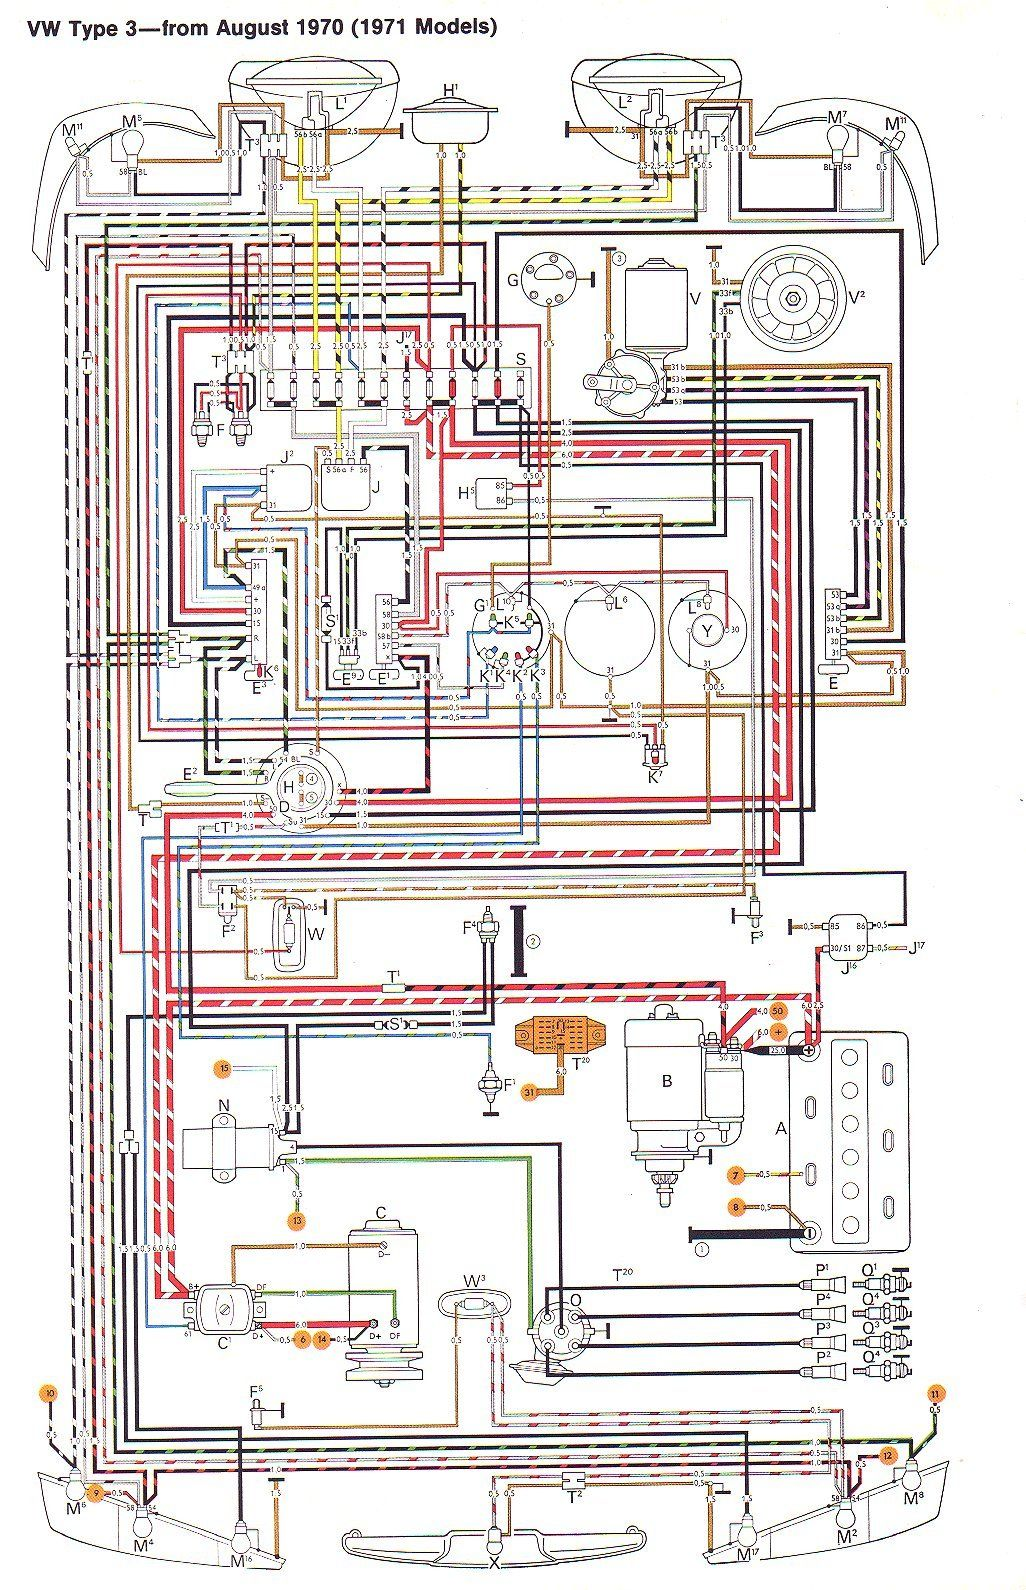 71 vw t3 wiring diagram van interior diagram type 3 volkswagen vintage [ 1026 x 1590 Pixel ]